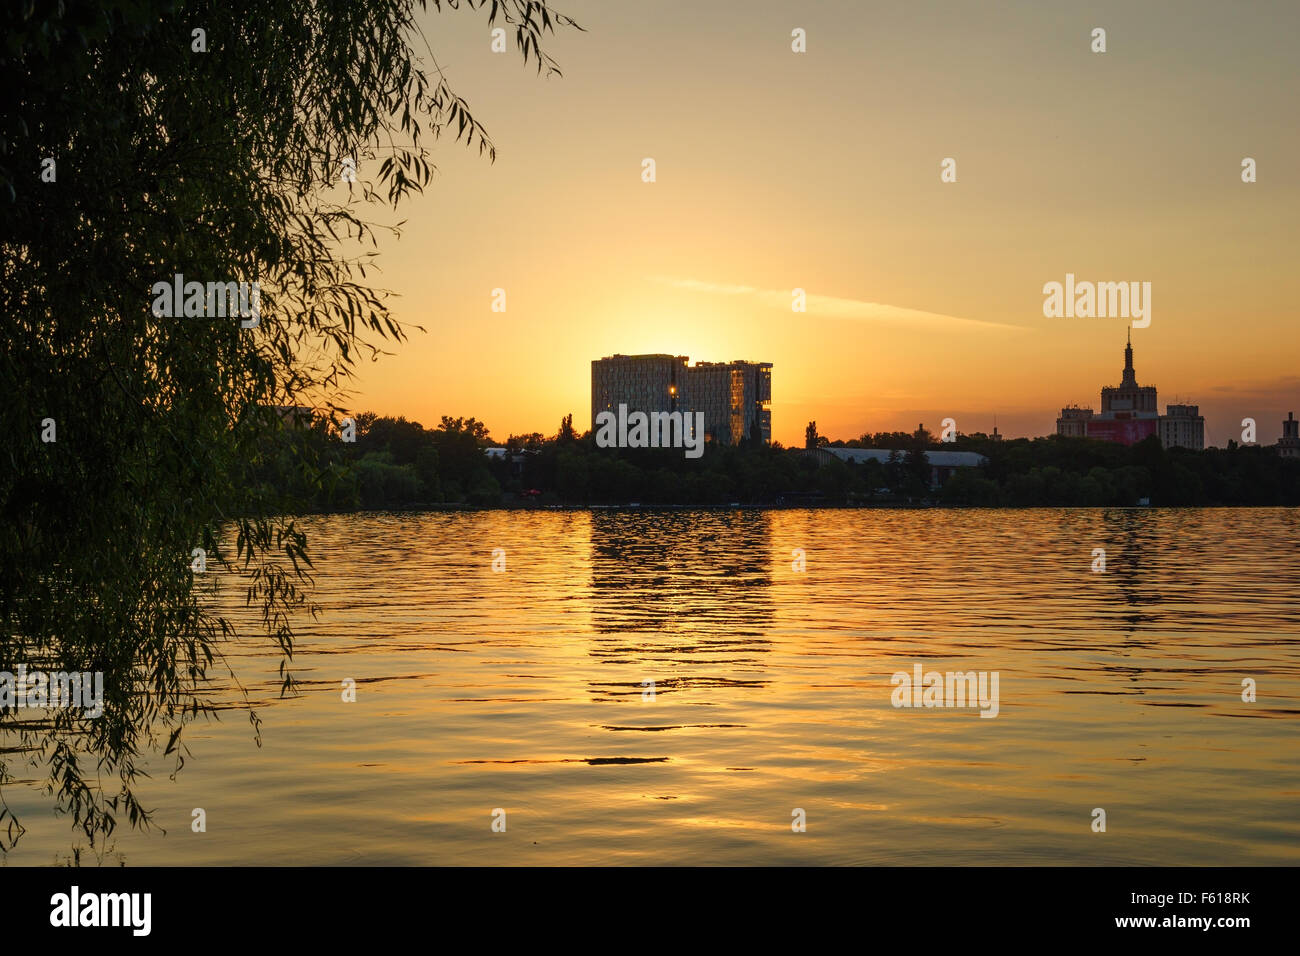 Sunset over the lake at Herastrau Park in Bucharest, Romania. Stock Photo